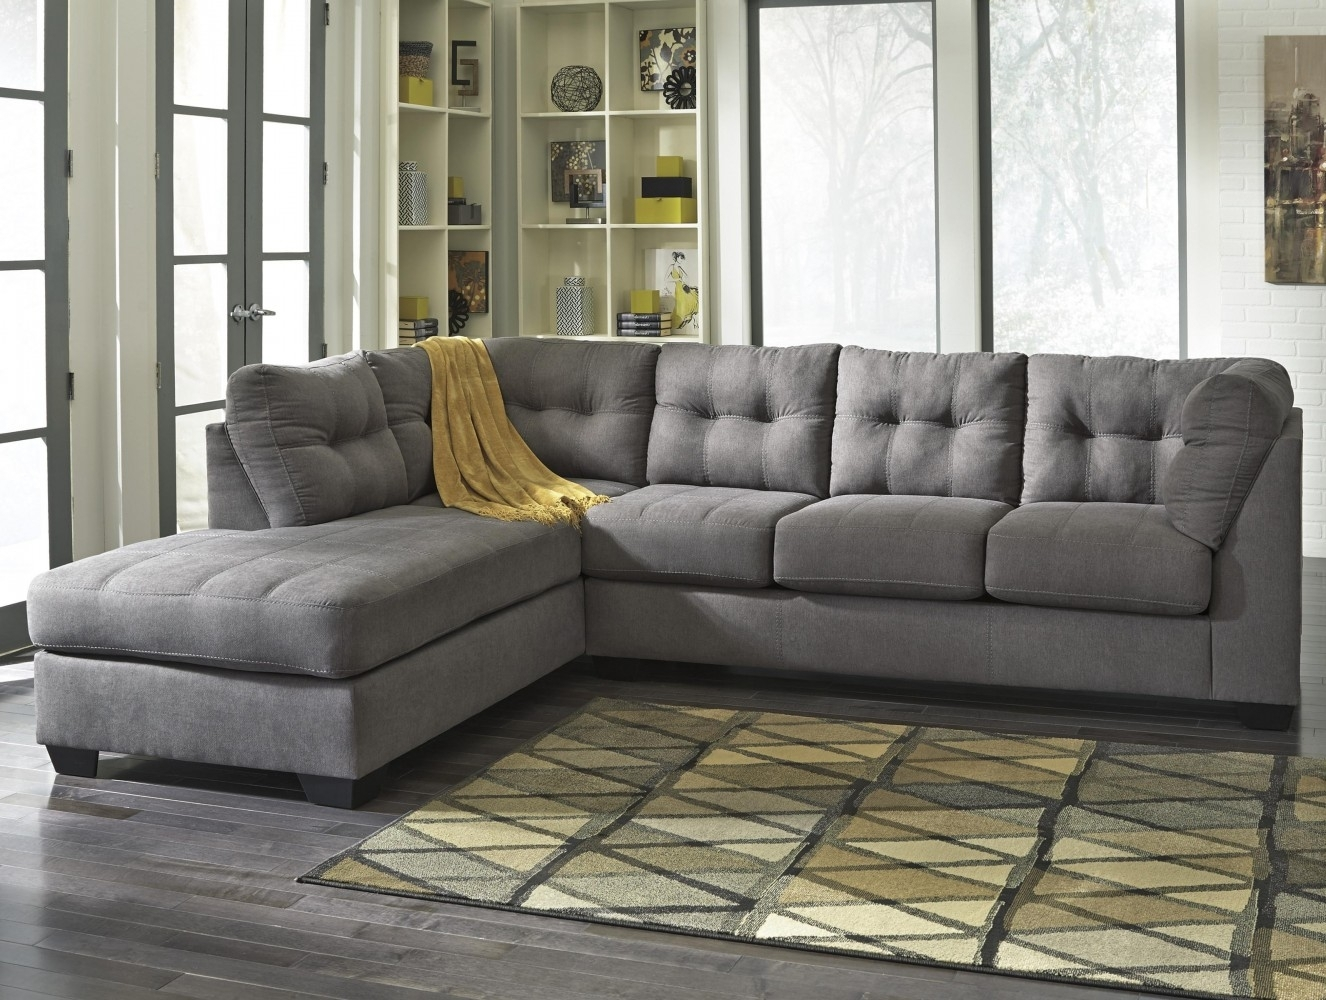 2 Piece Sectional Sofa Canada | Baci Living Room Intended For Josephine 2 Piece Sectionals With Raf Sofa (Image 1 of 25)